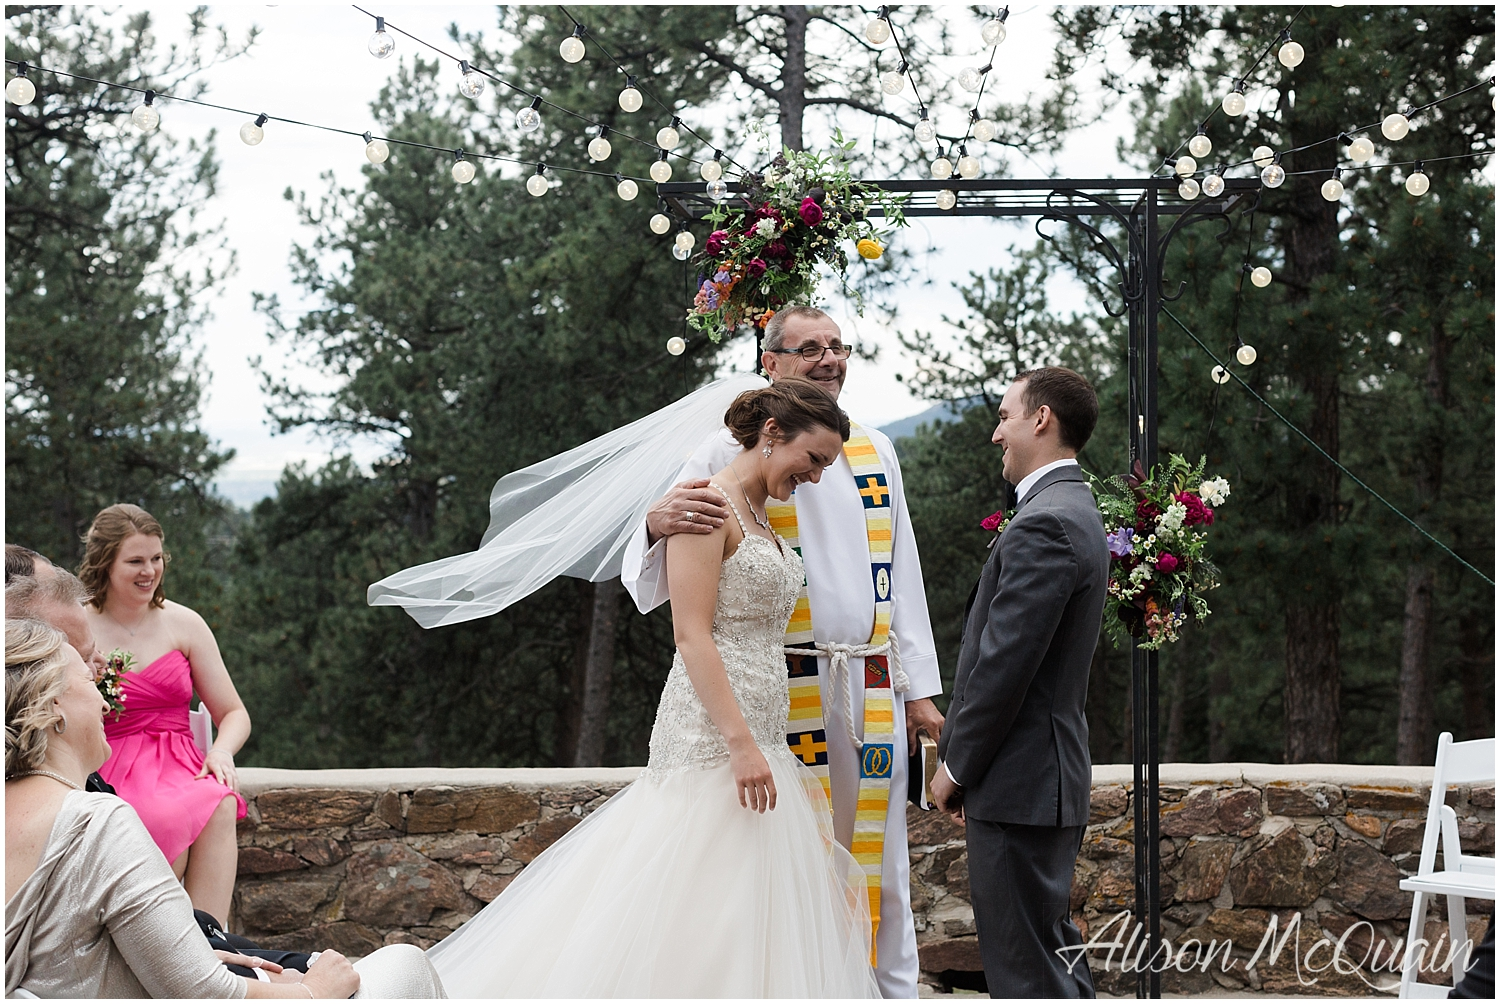 AandJ_Wedding_BoettcherMansion_Golden_Colorado_6_2018_AMP_0031.jpg